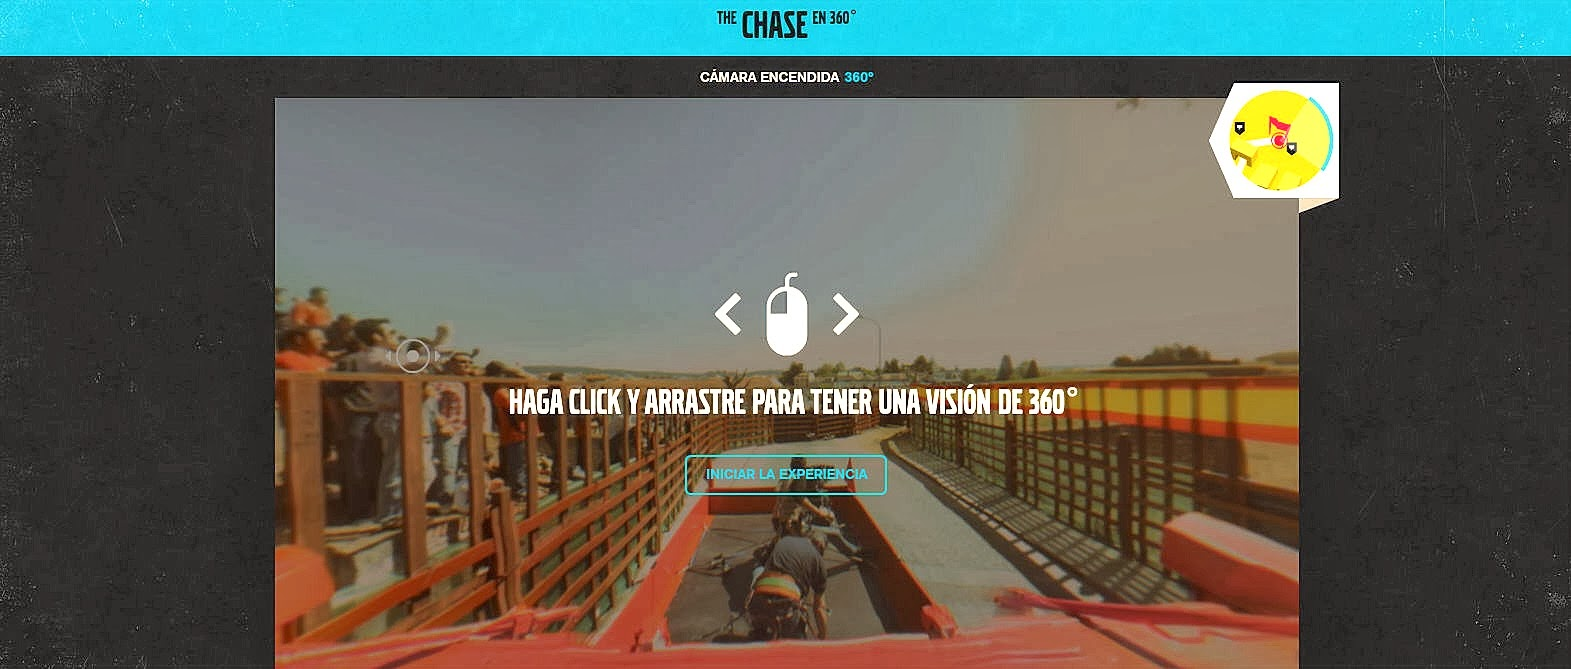 http://www.thechase360.com/es-es/?sc_cid=BeOn-TheChase